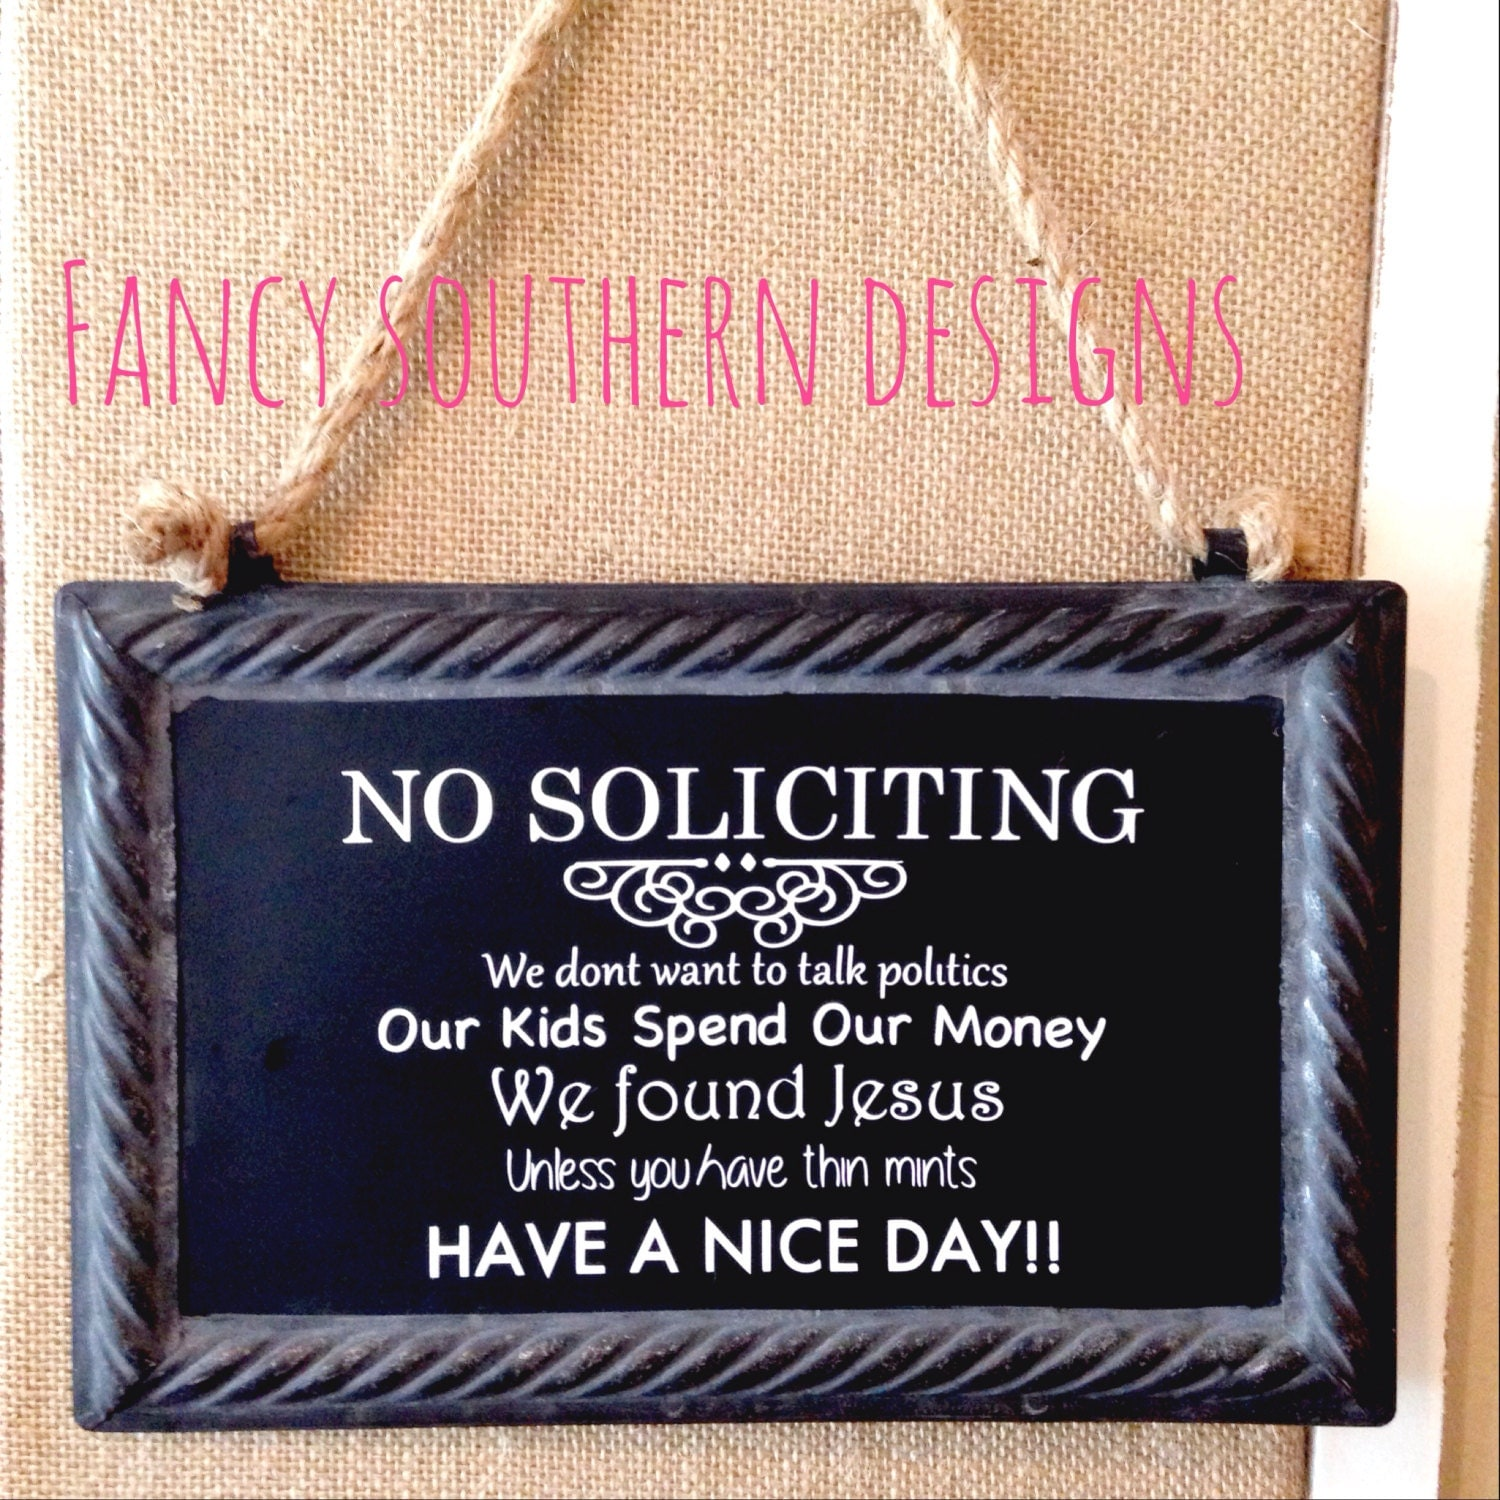 Funny no soliciting sign by fancysoutherndesigns on etsy - Funny soliciting signs ...